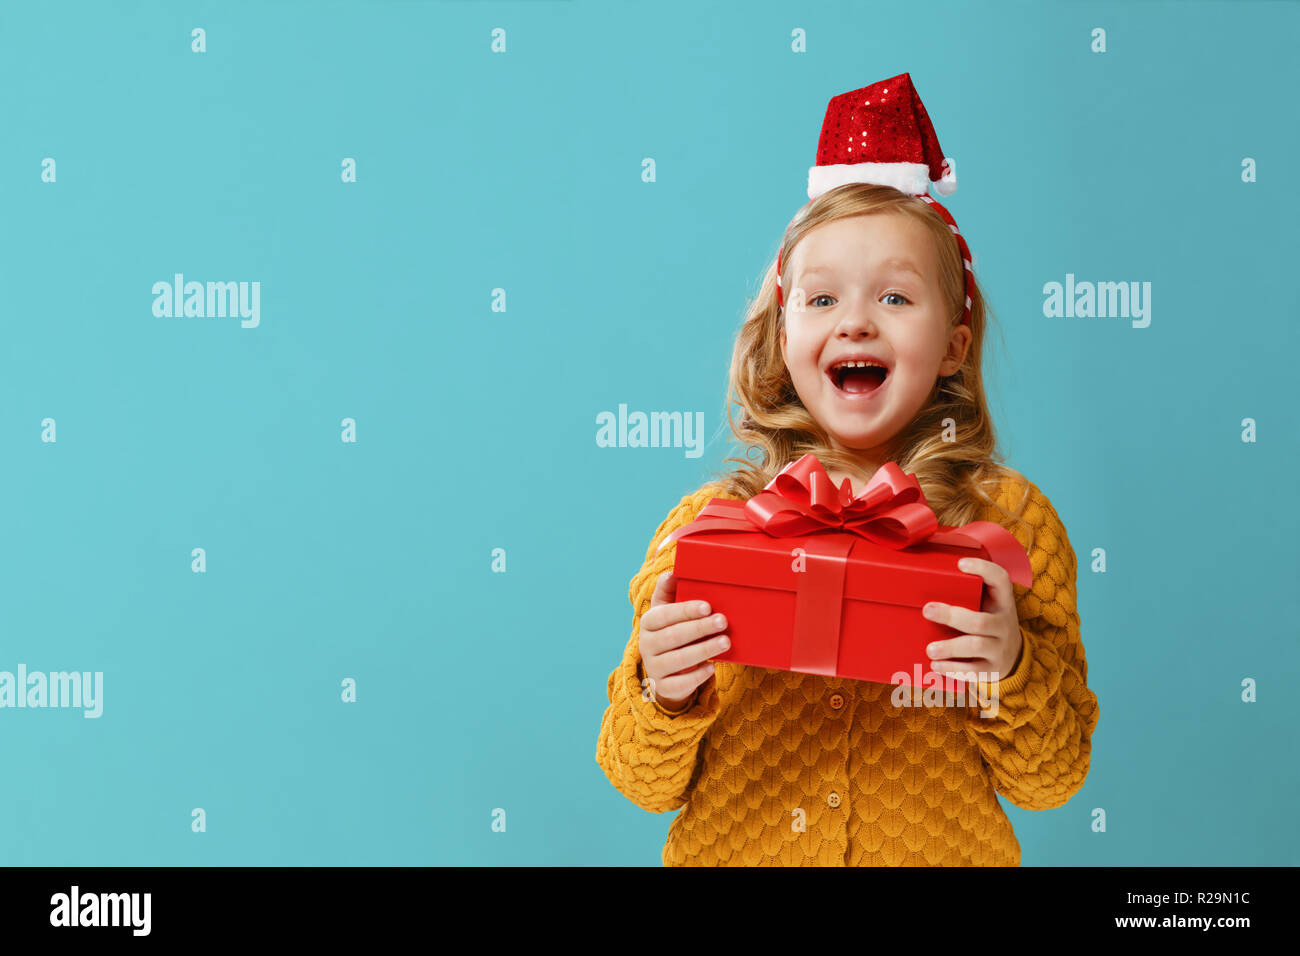 b4c82cca65f79 Happy little child girl in a warm knitted sweater and cap Santa Claus is  holding a